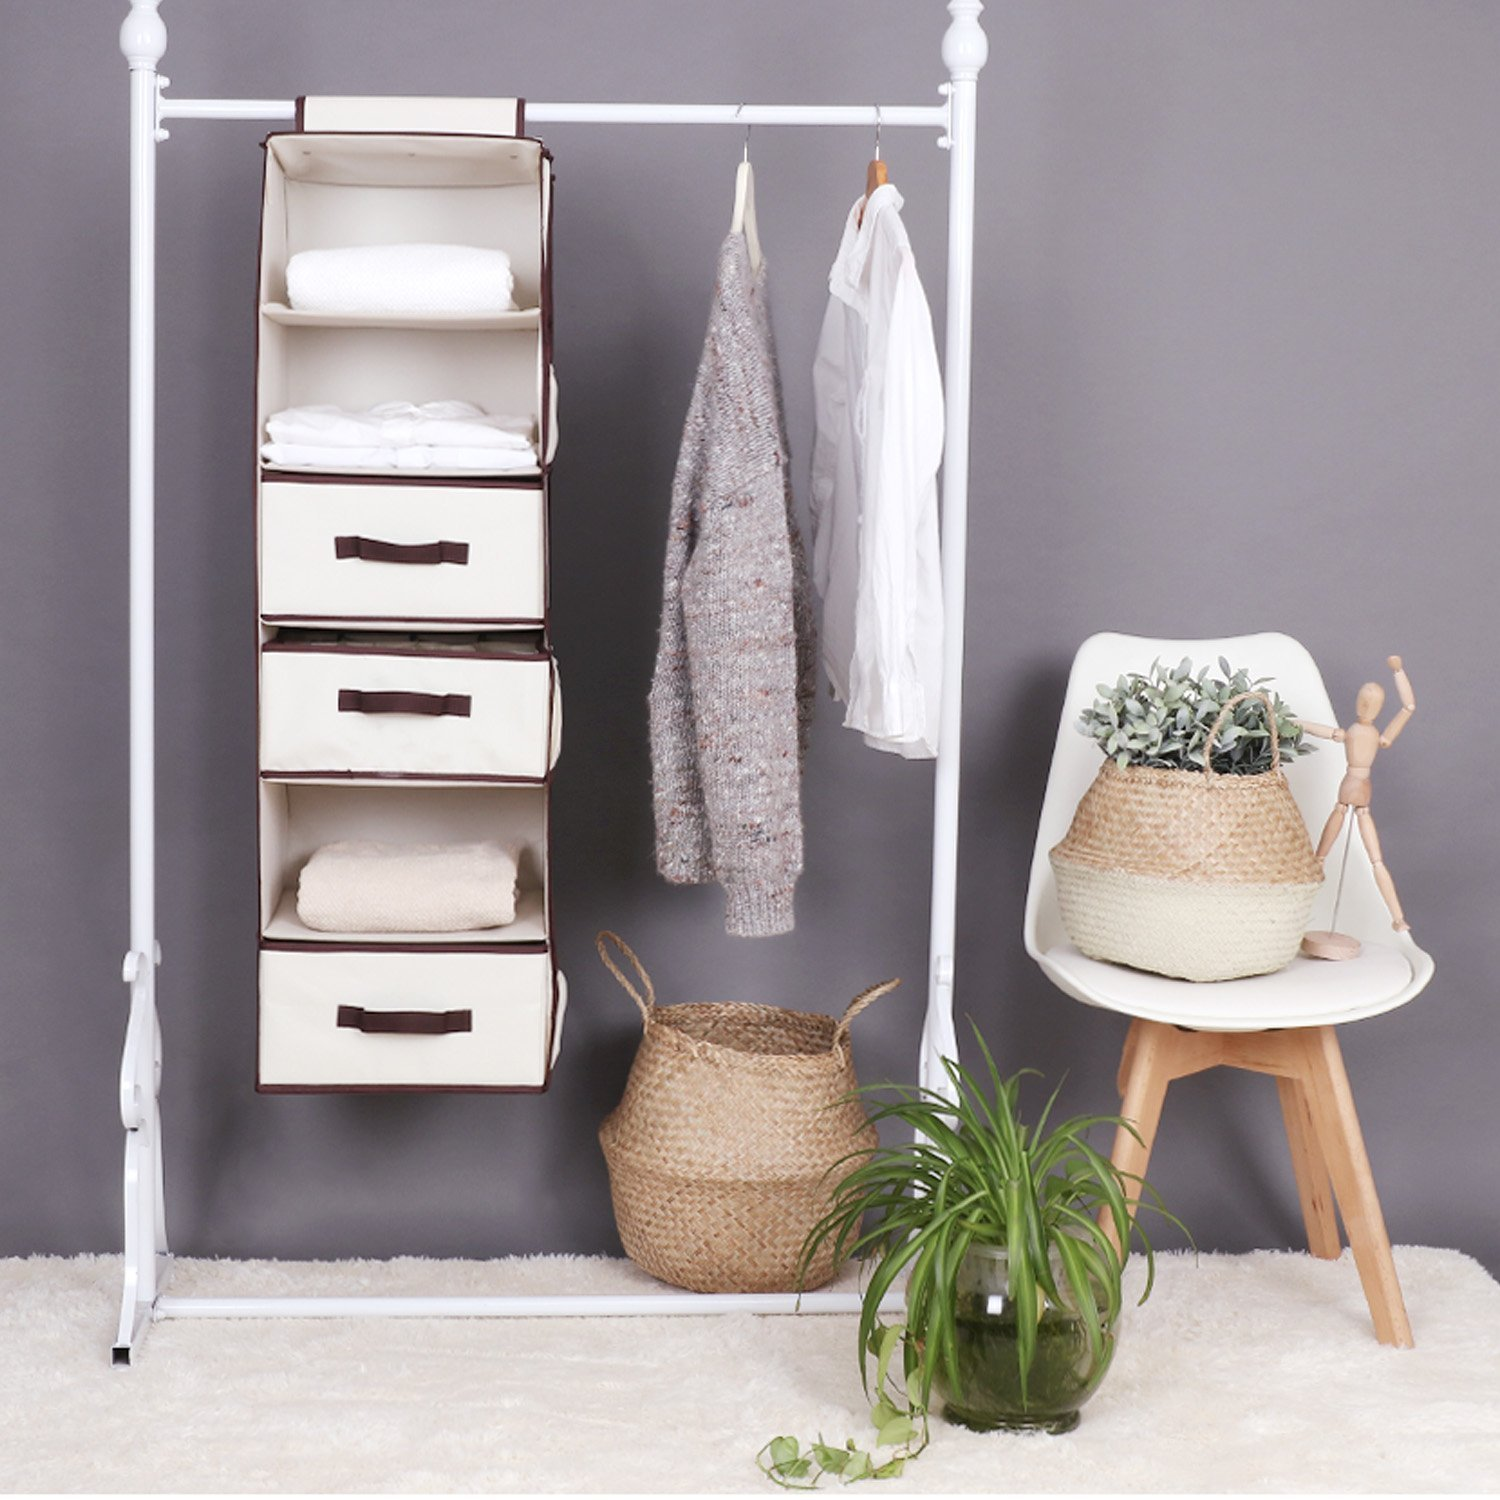 closet furniture drawers accessoris hanging space cream shelving pin ideas trendy wall clothes design placed for the shelves also on and systems with